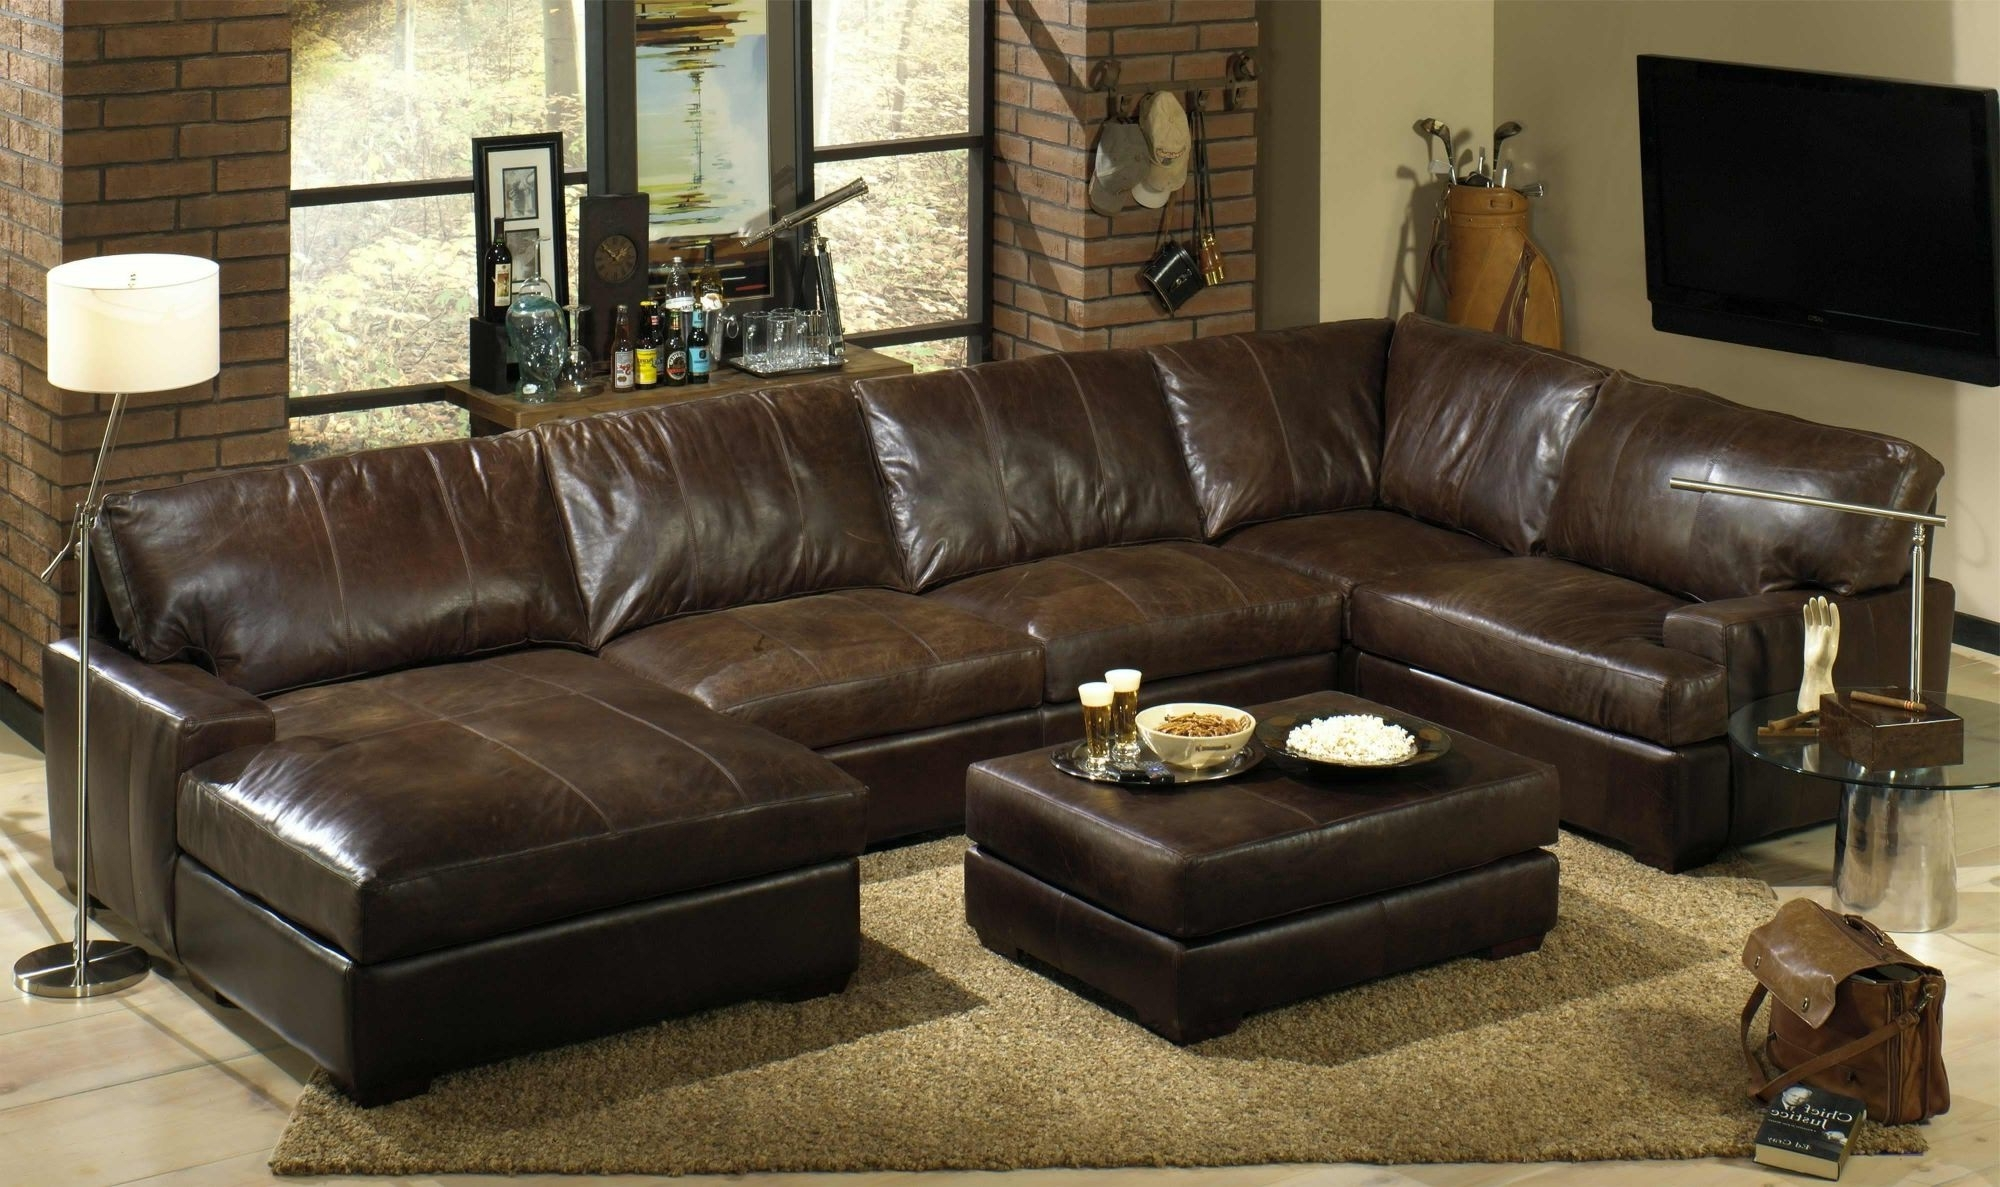 2018 Sectional Sofas For Small Spaces With Recliners Throughout Amazing Sectional Sofa Design Small Leather Chaise Pict Of With (View 9 of 15)